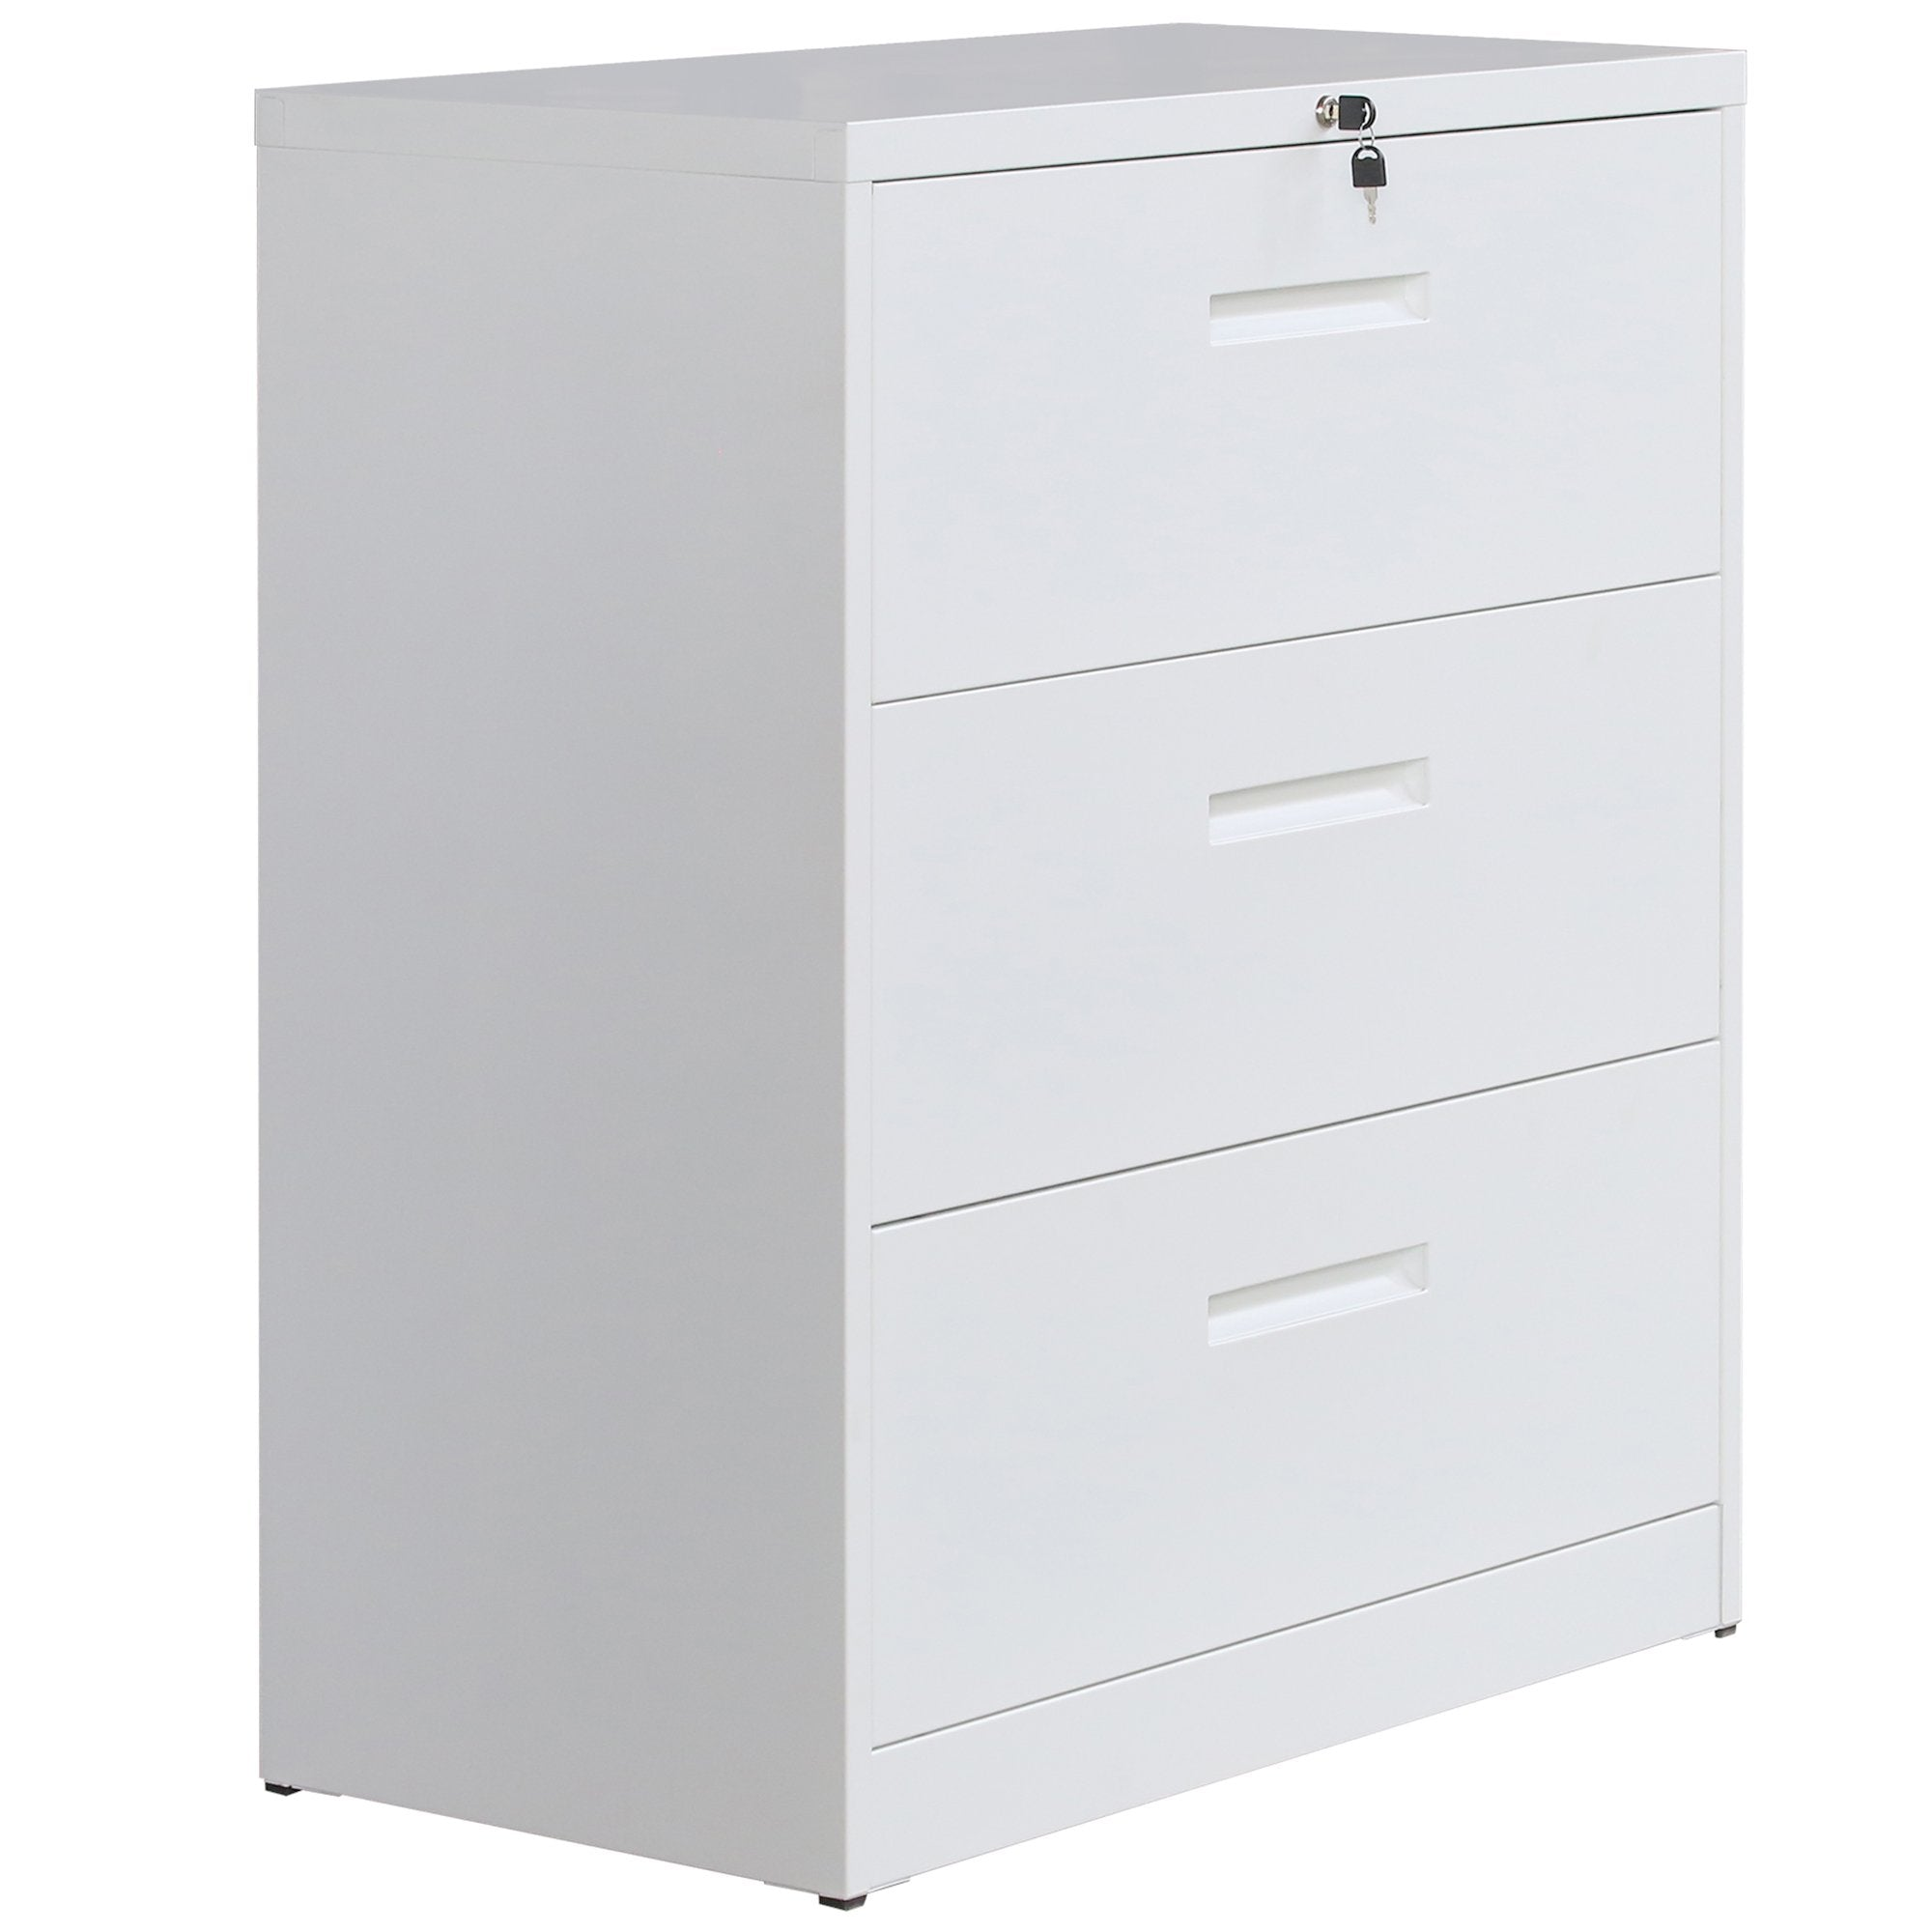 Ewing Filing Cabinet